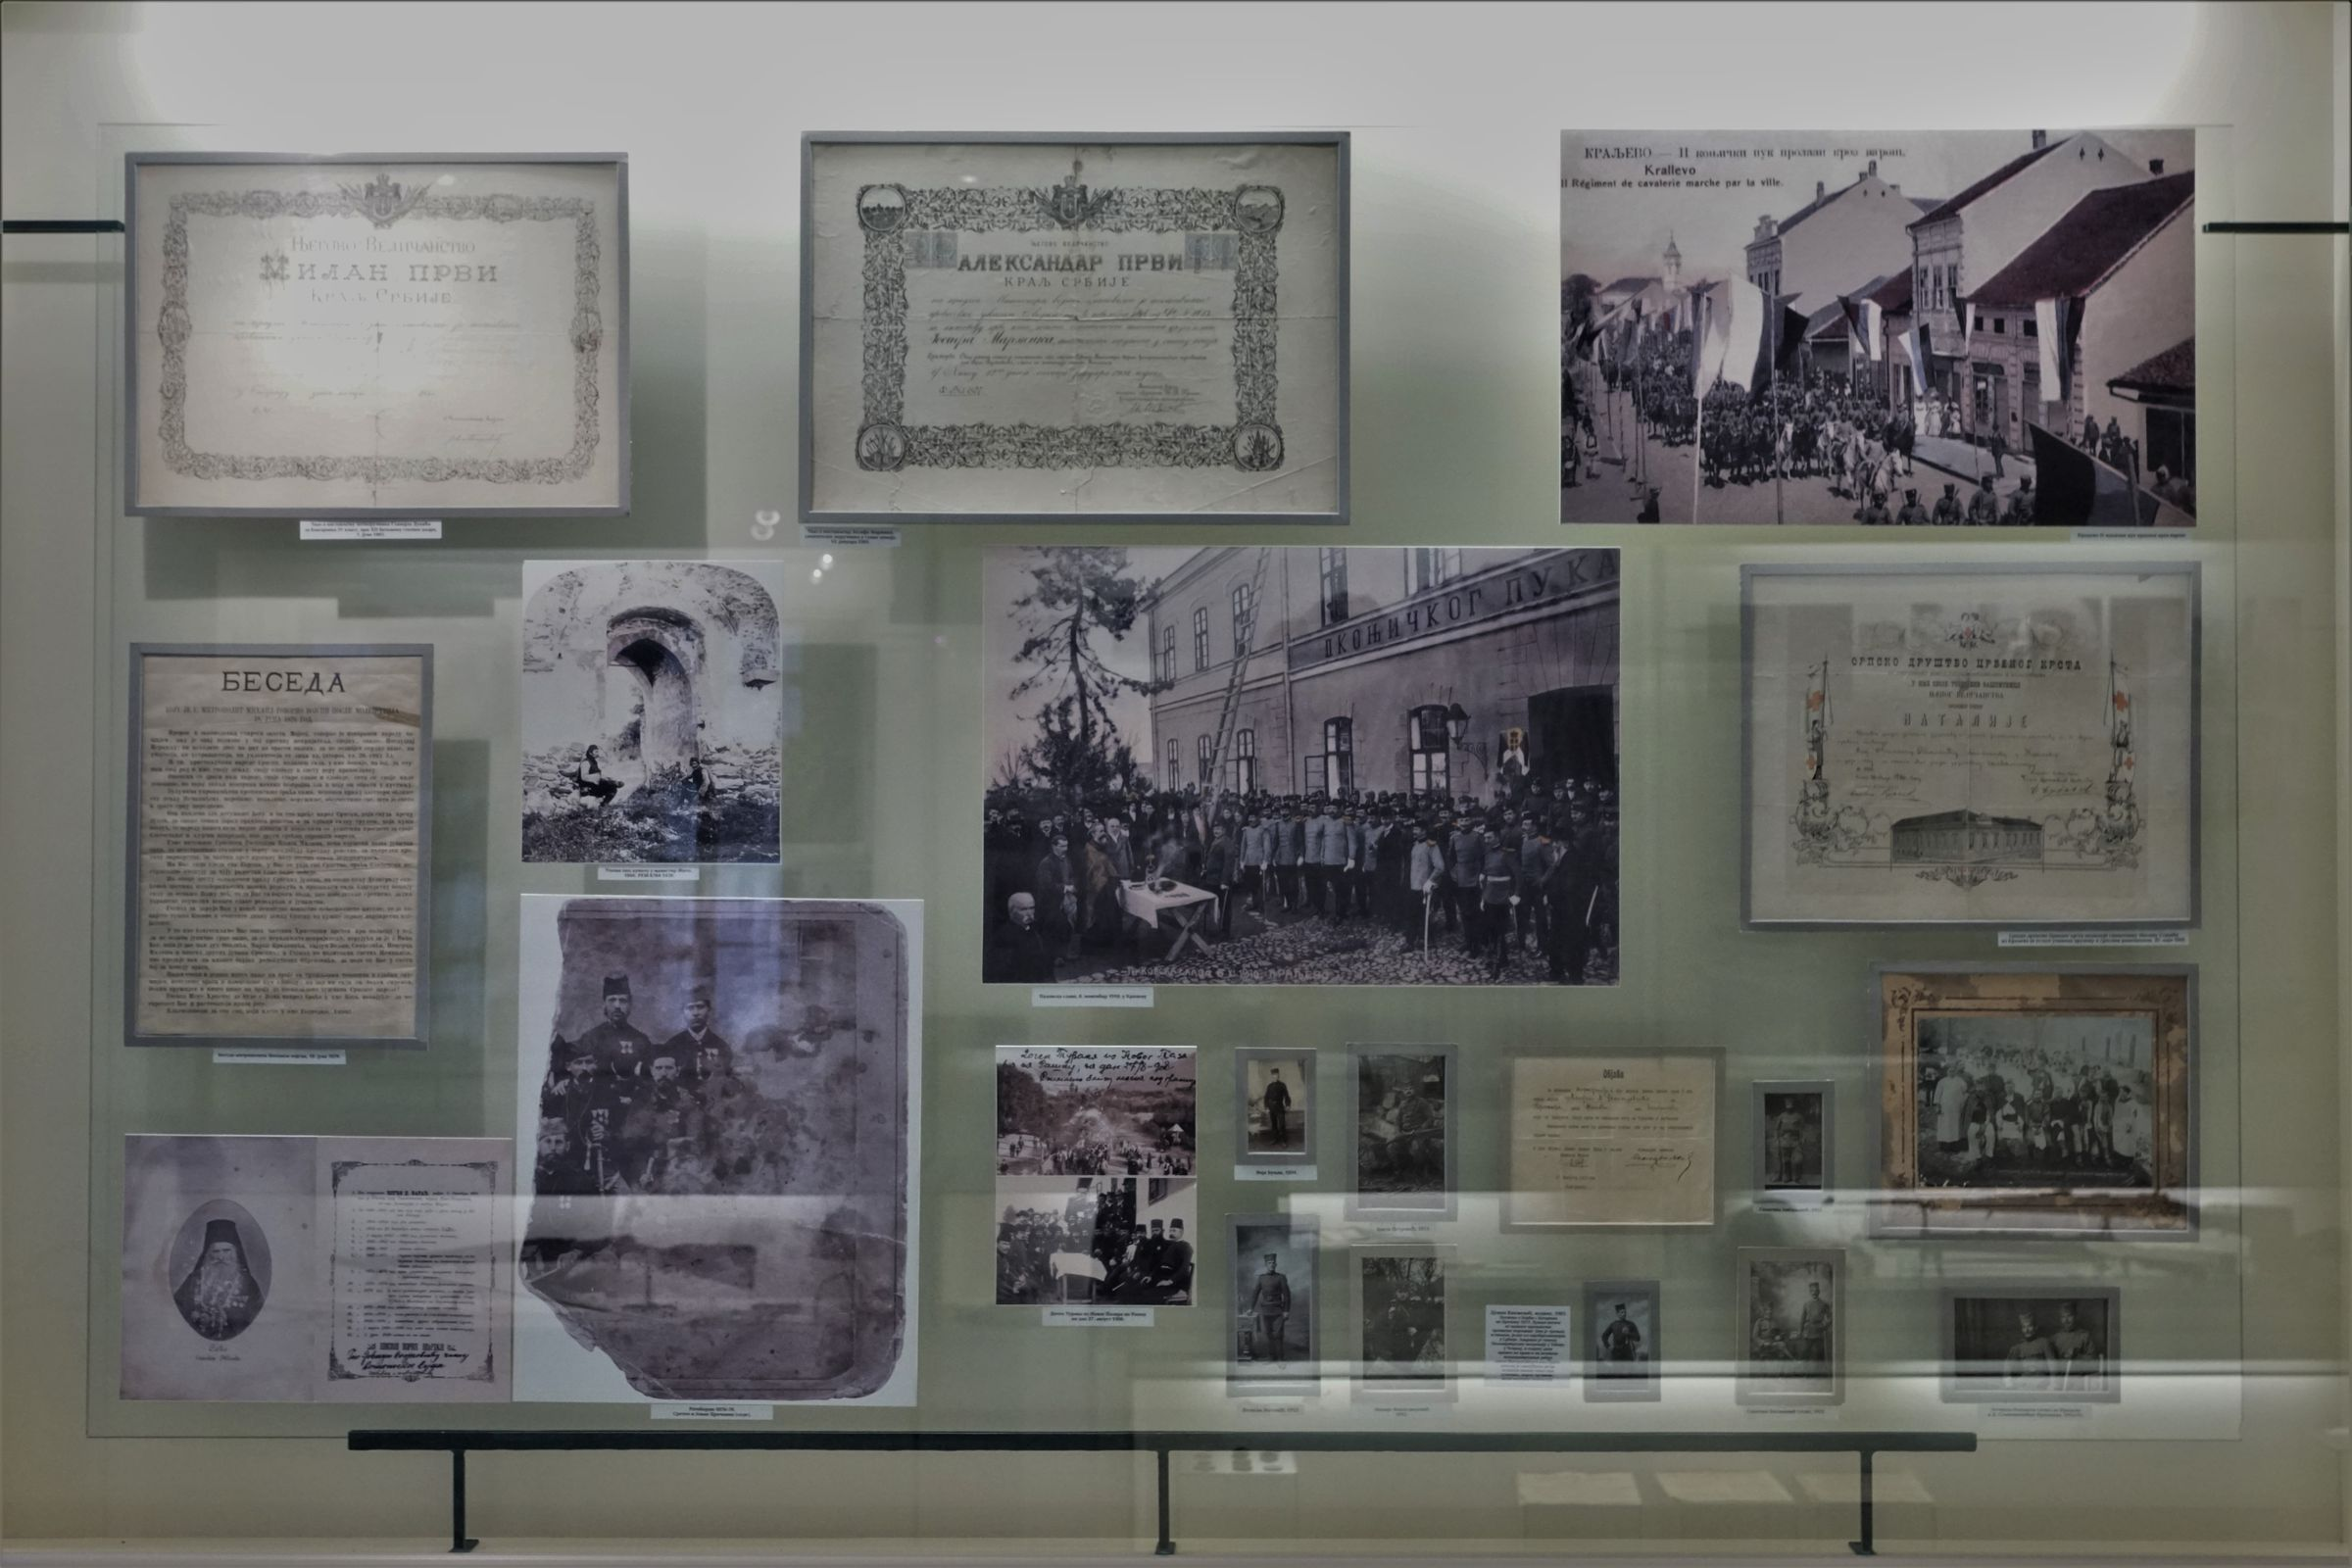 Display case dedicated to the Serbian army during the 19th century in Kraljevo